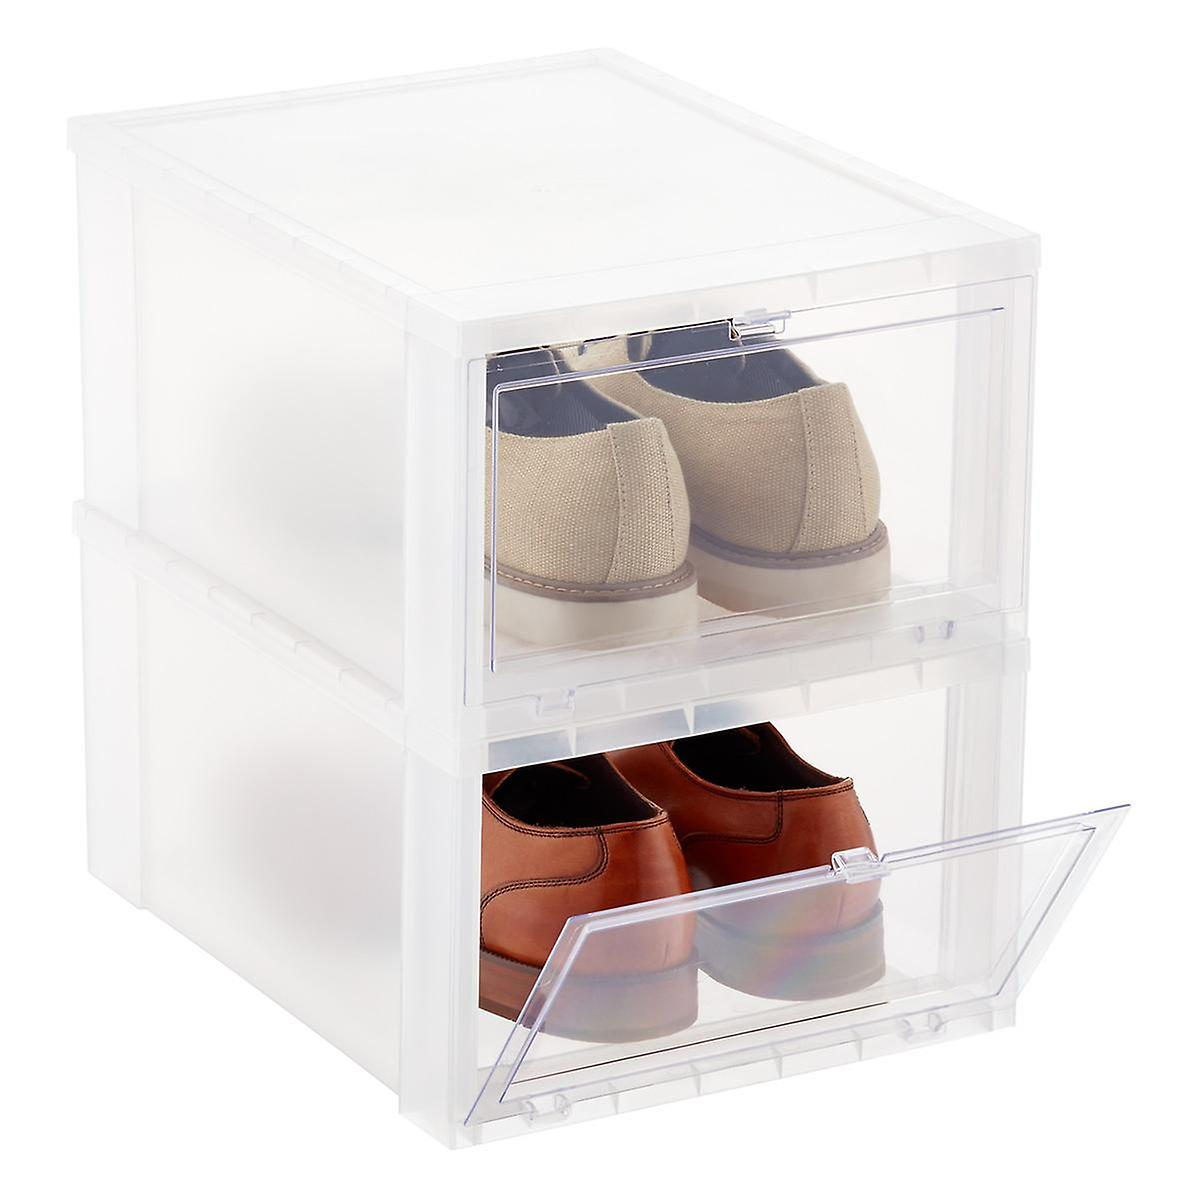 plastic ref inclined containers shelf with shelves container shelving trolley mobile sloped content